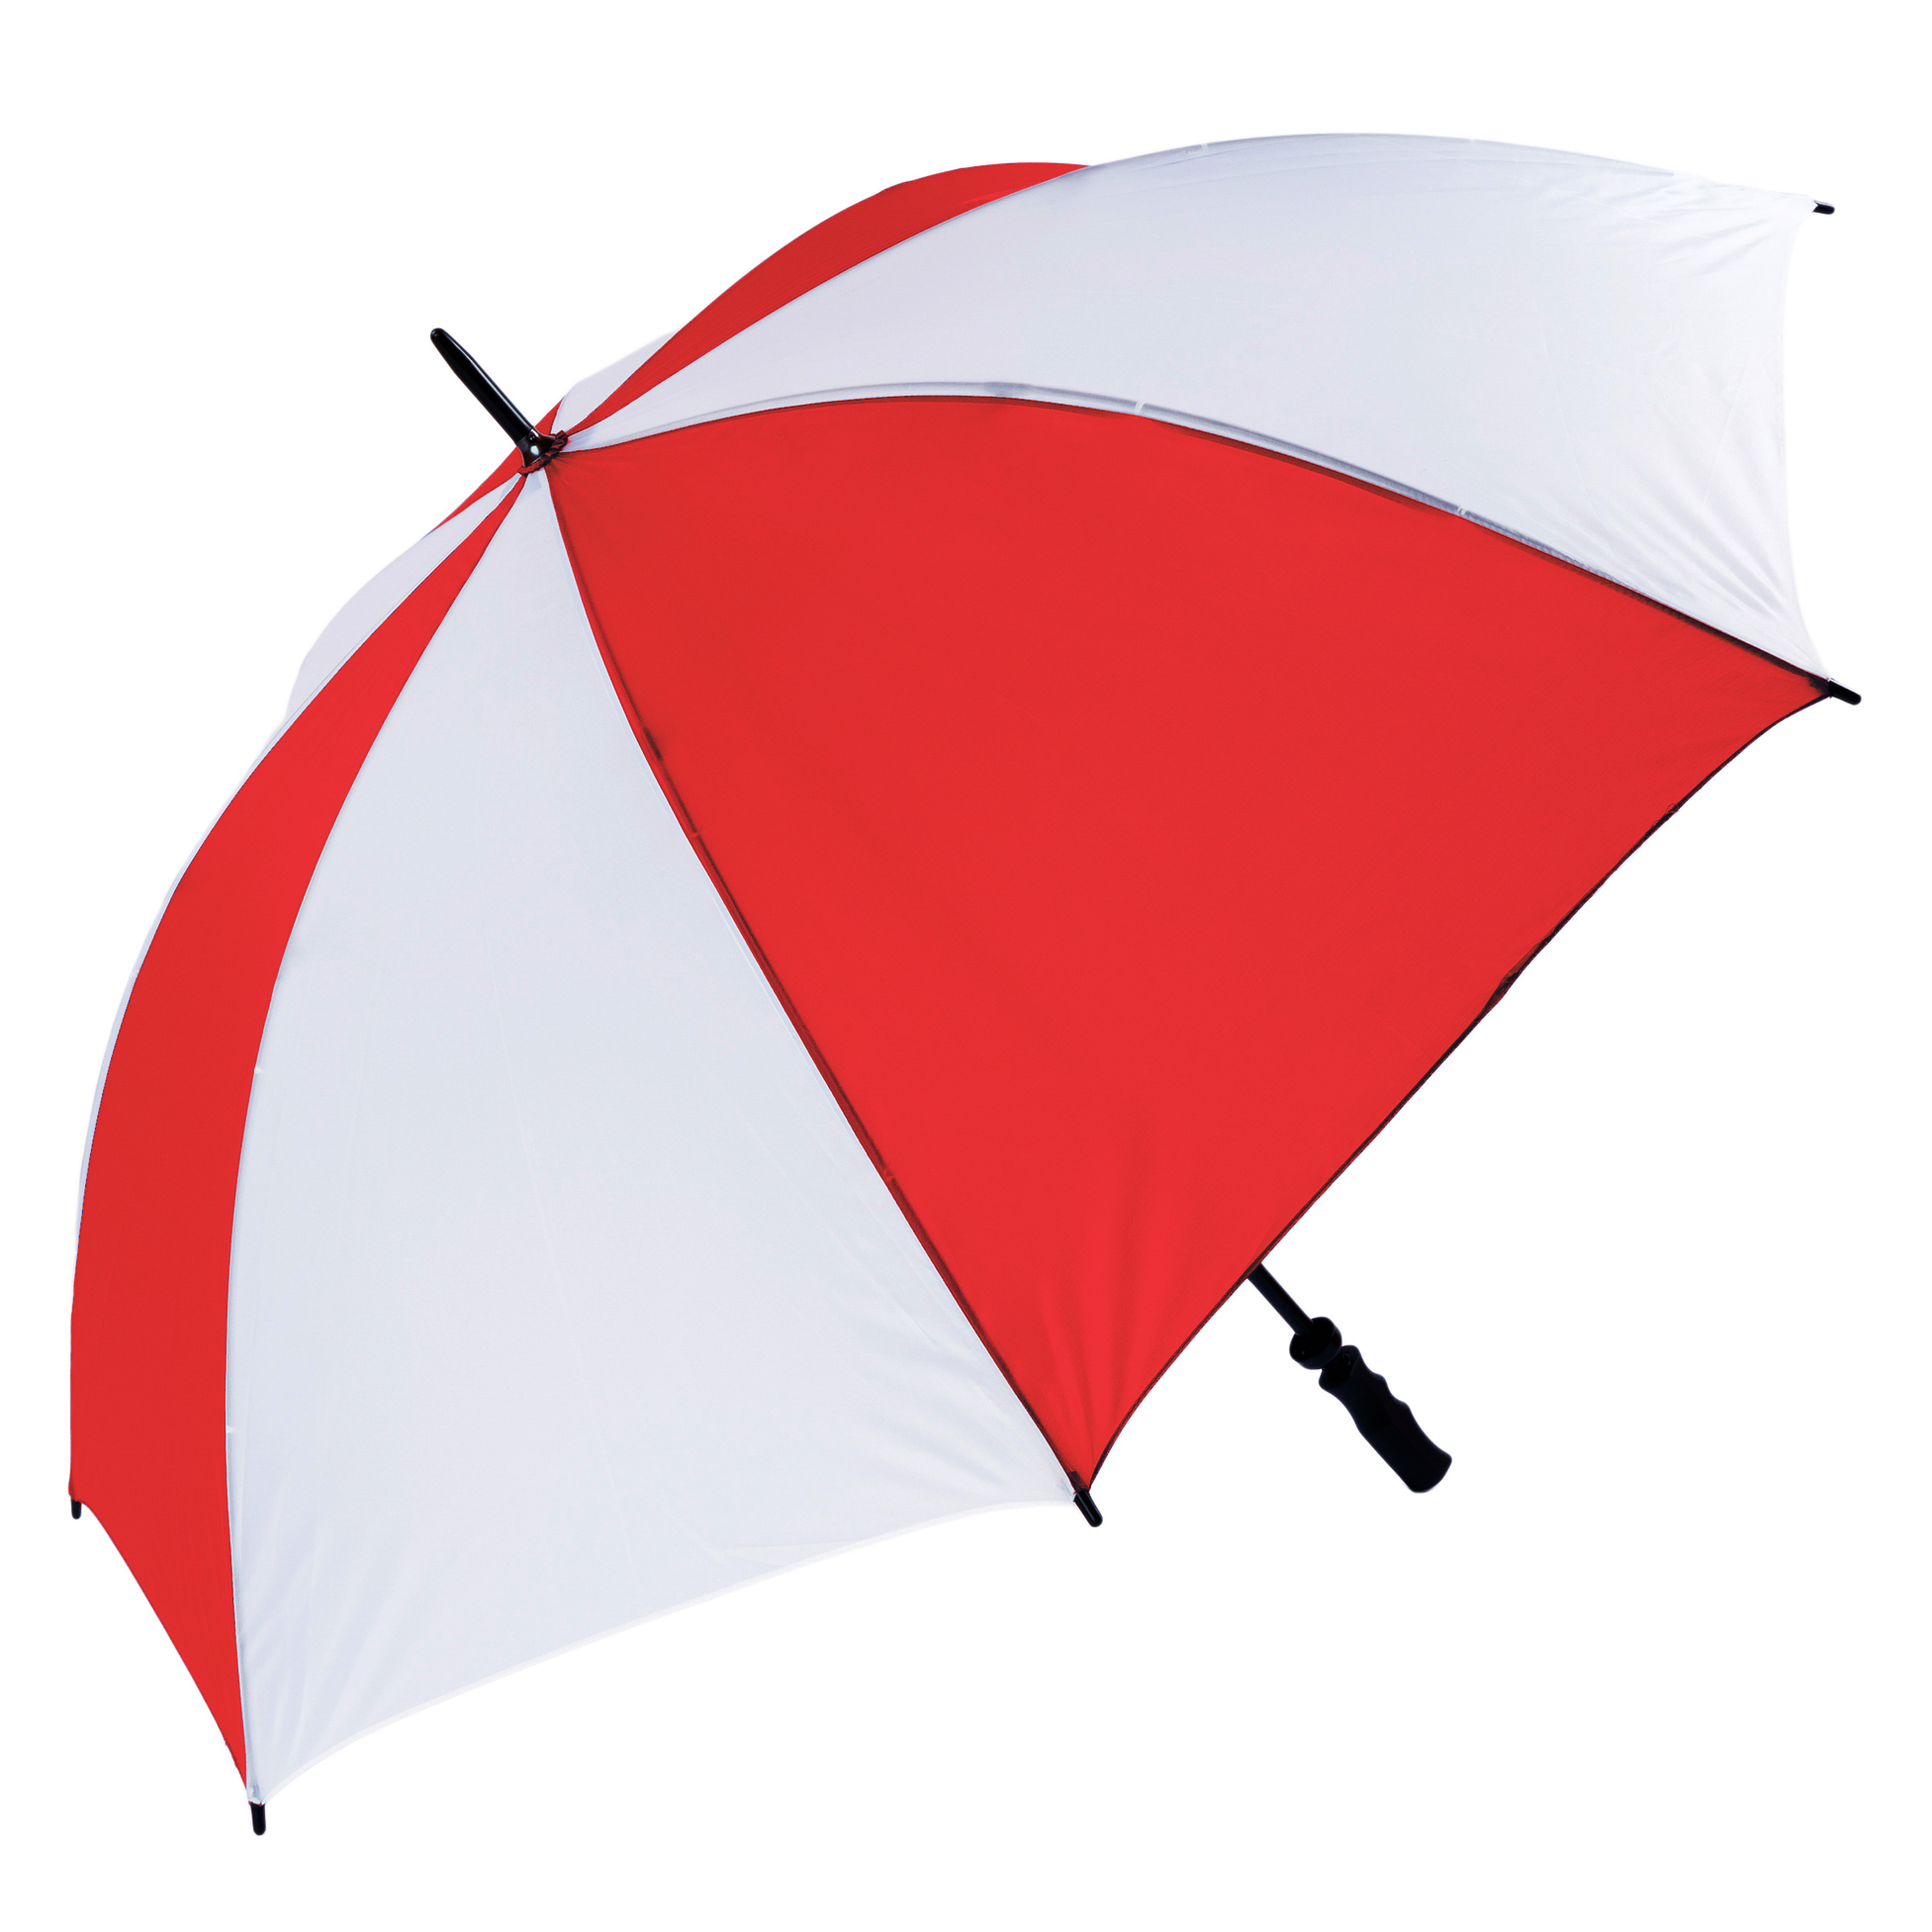 Lightweight Red & White Golf Umbrella Wind Resistant Fibrelight (3473)